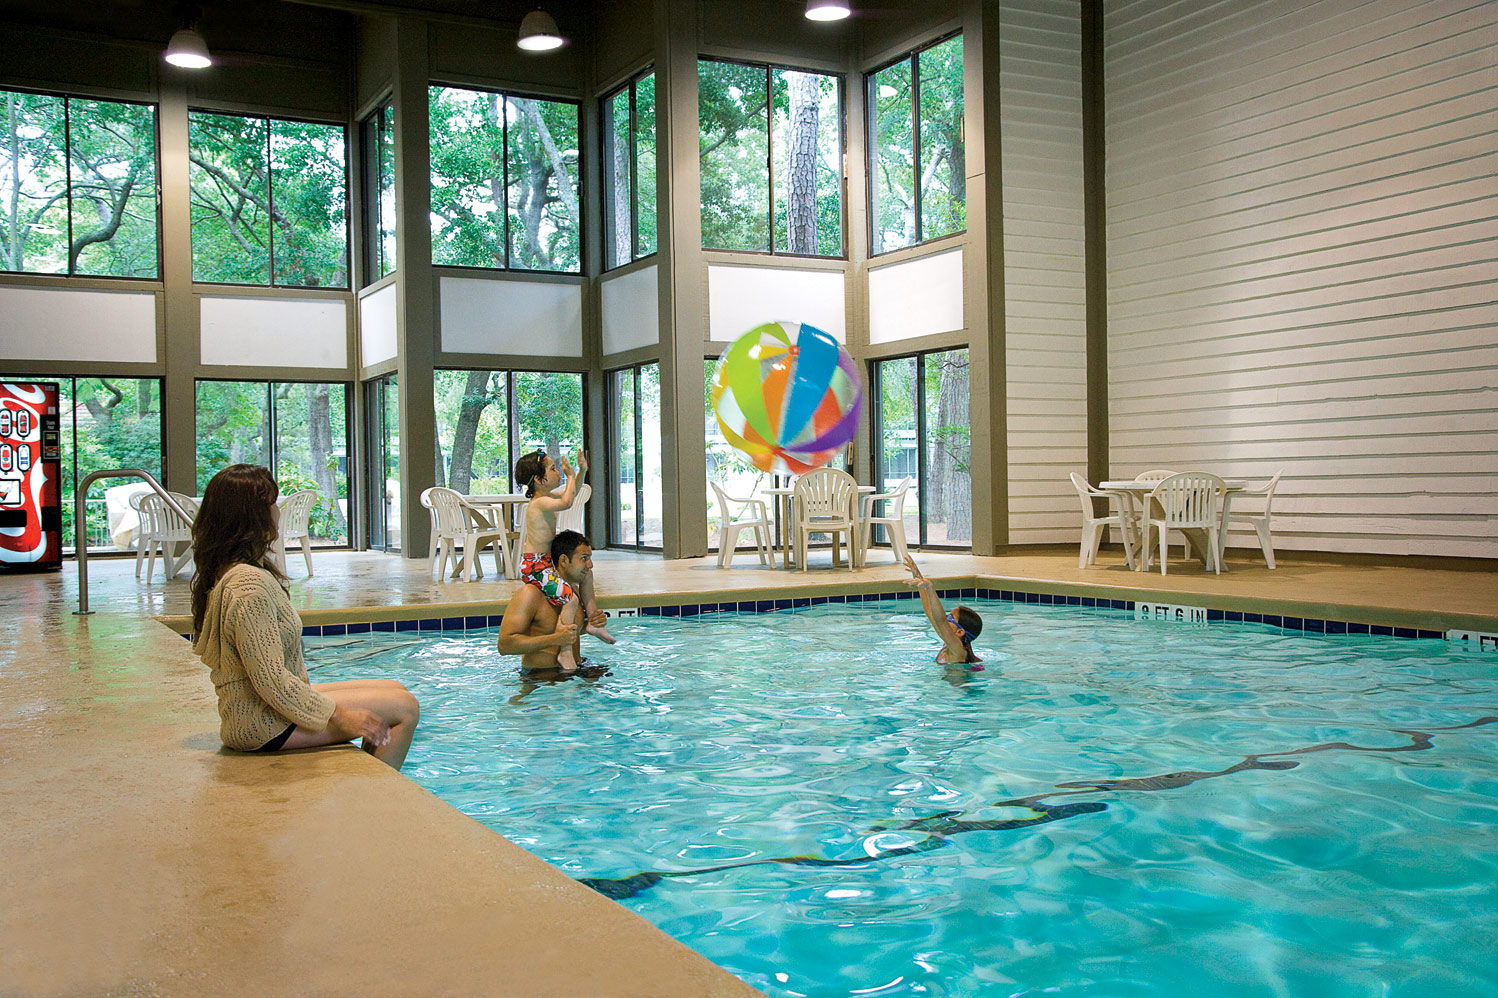 Relax at the Indoor Pool!